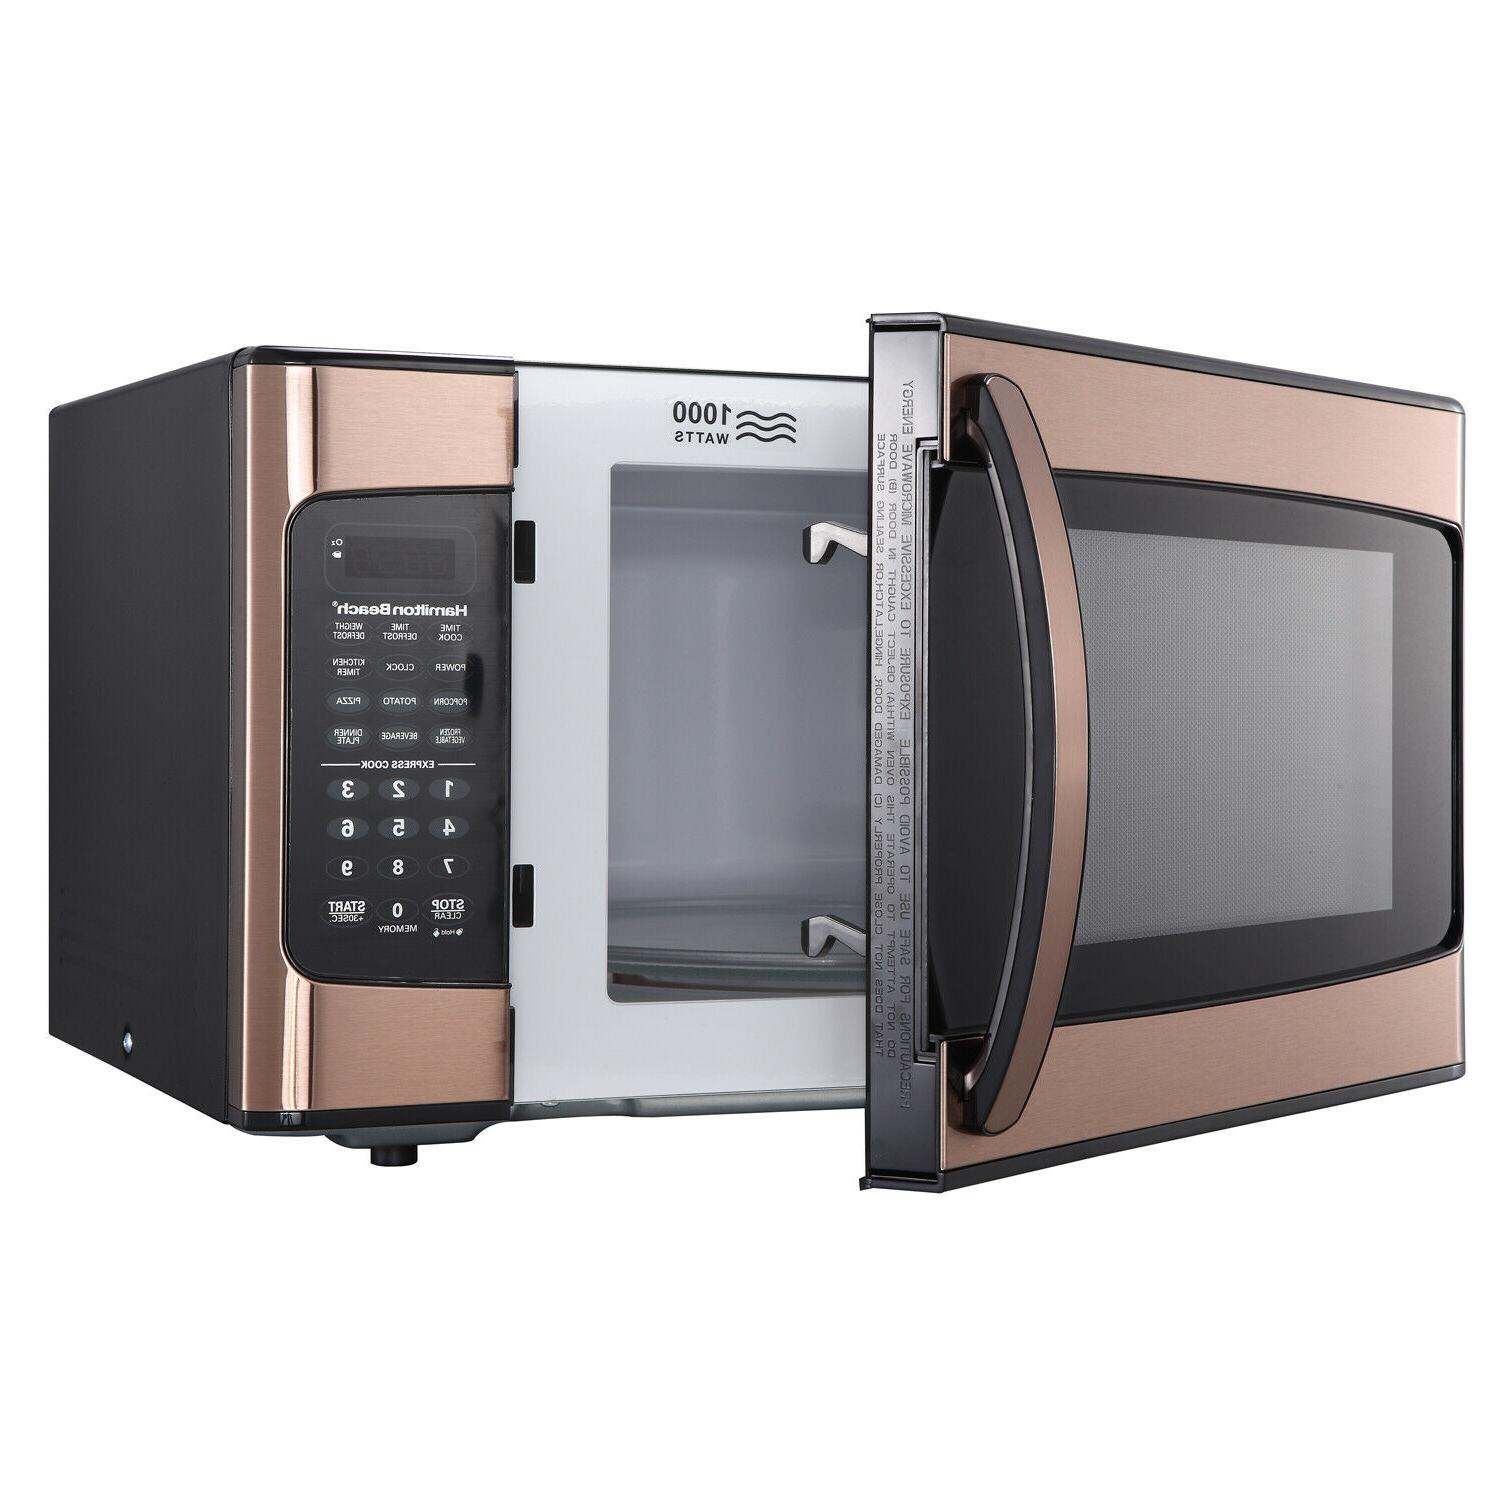 Microwave Hamilton Beach 1.1 Stainless Steel